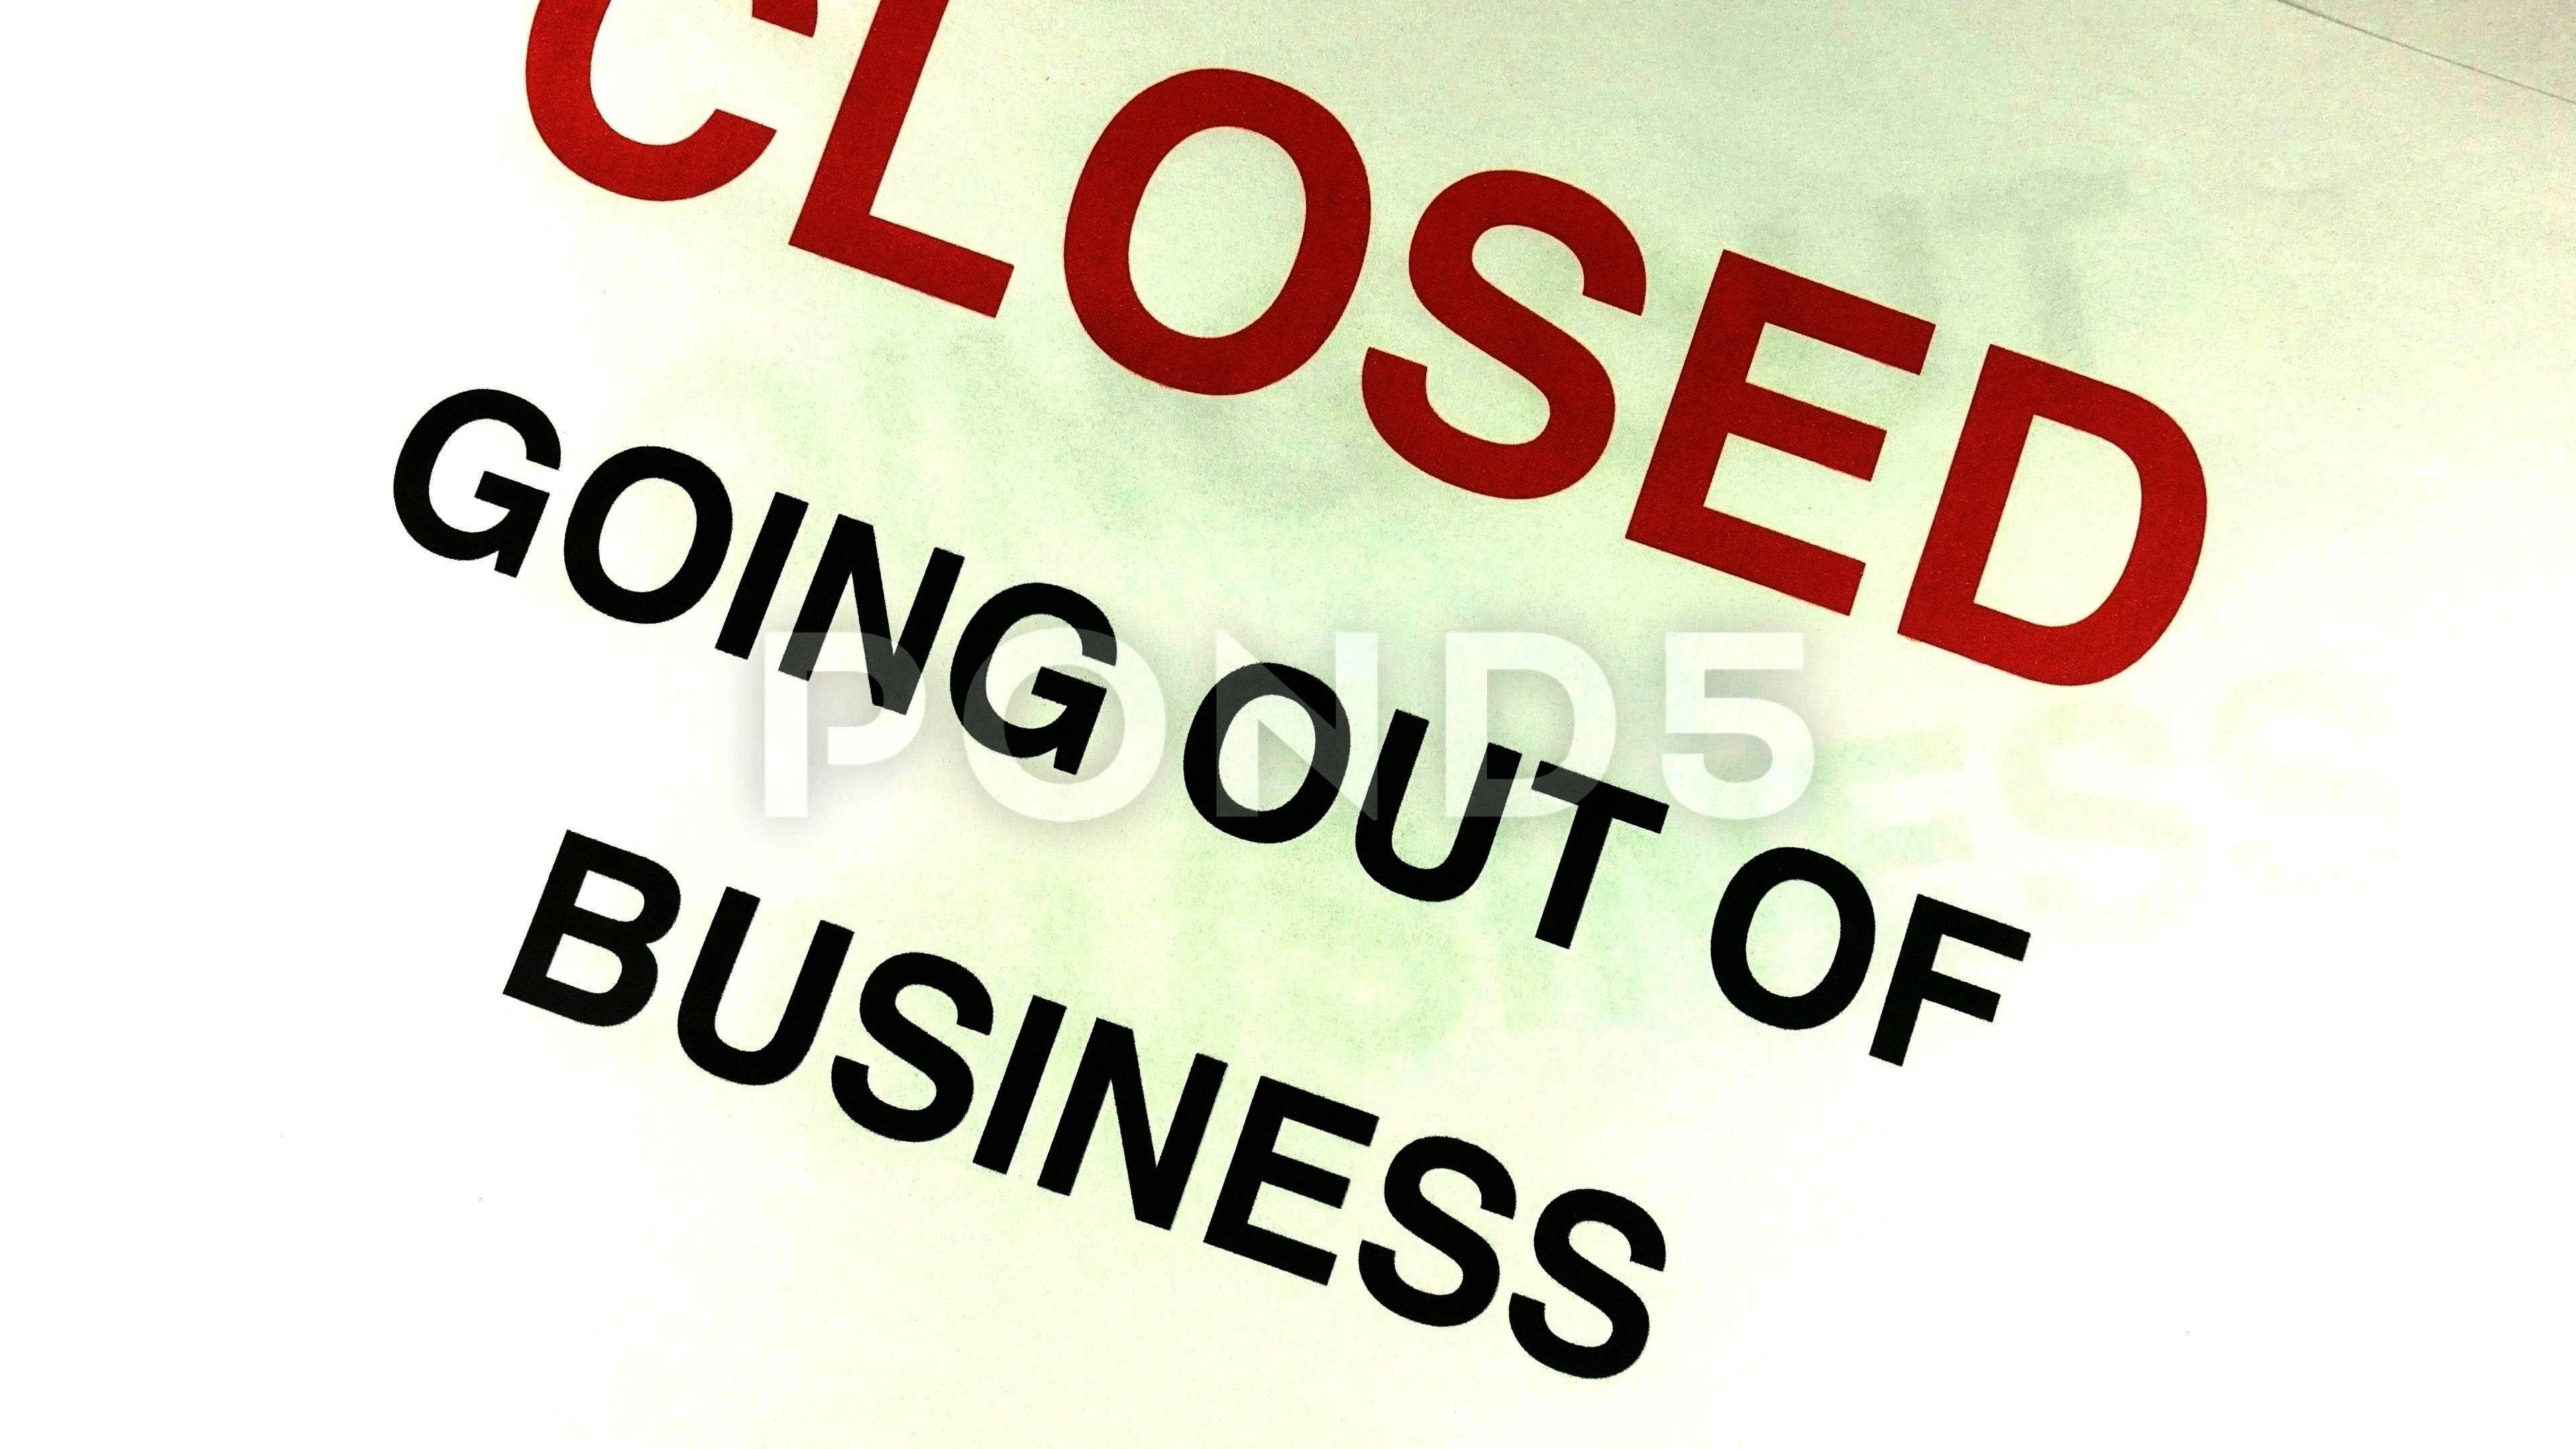 Debts closing and going out of business signs and notices Stock Footage DebtsclosingDebtrecessionDebt and recession Debts closing and going out of business signs and noti...